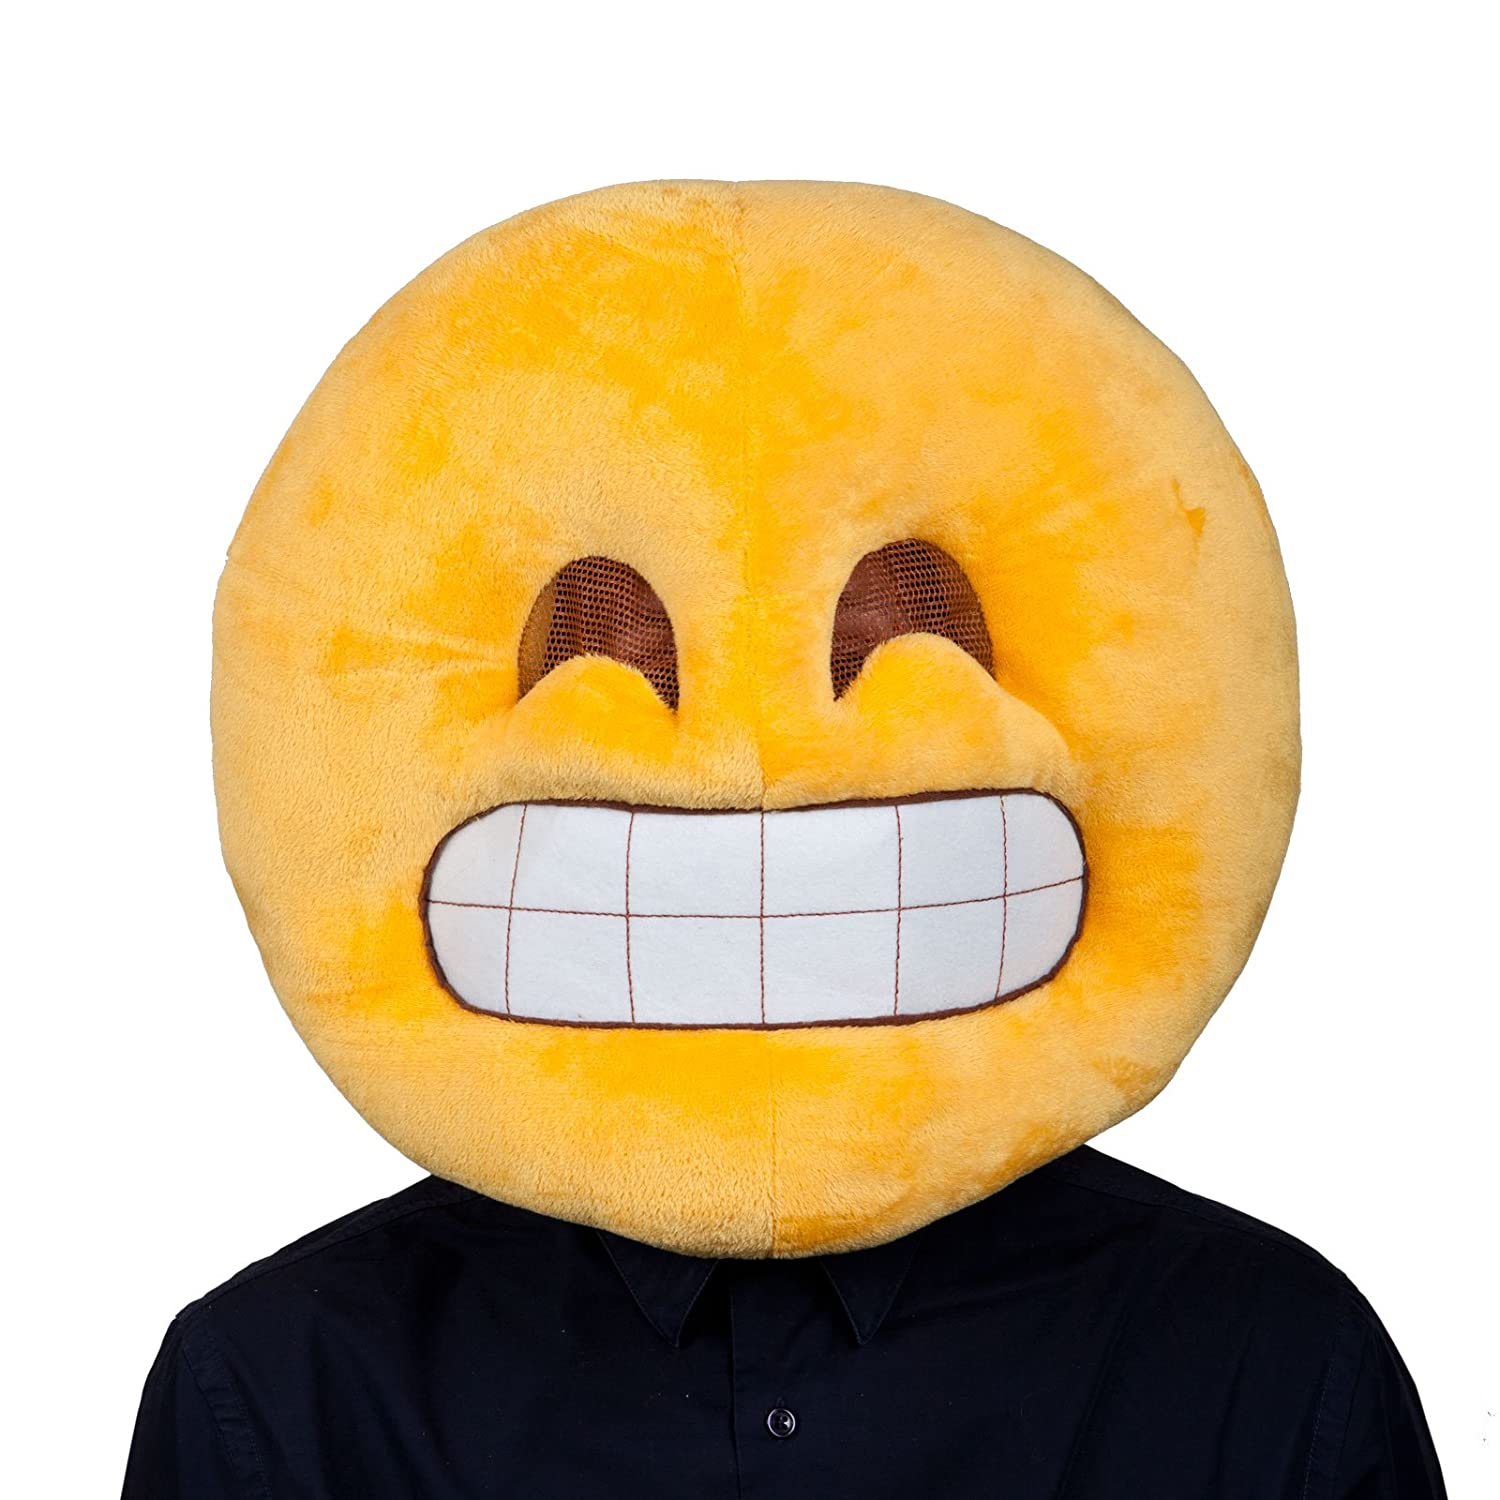 Classic smiley costume face adult